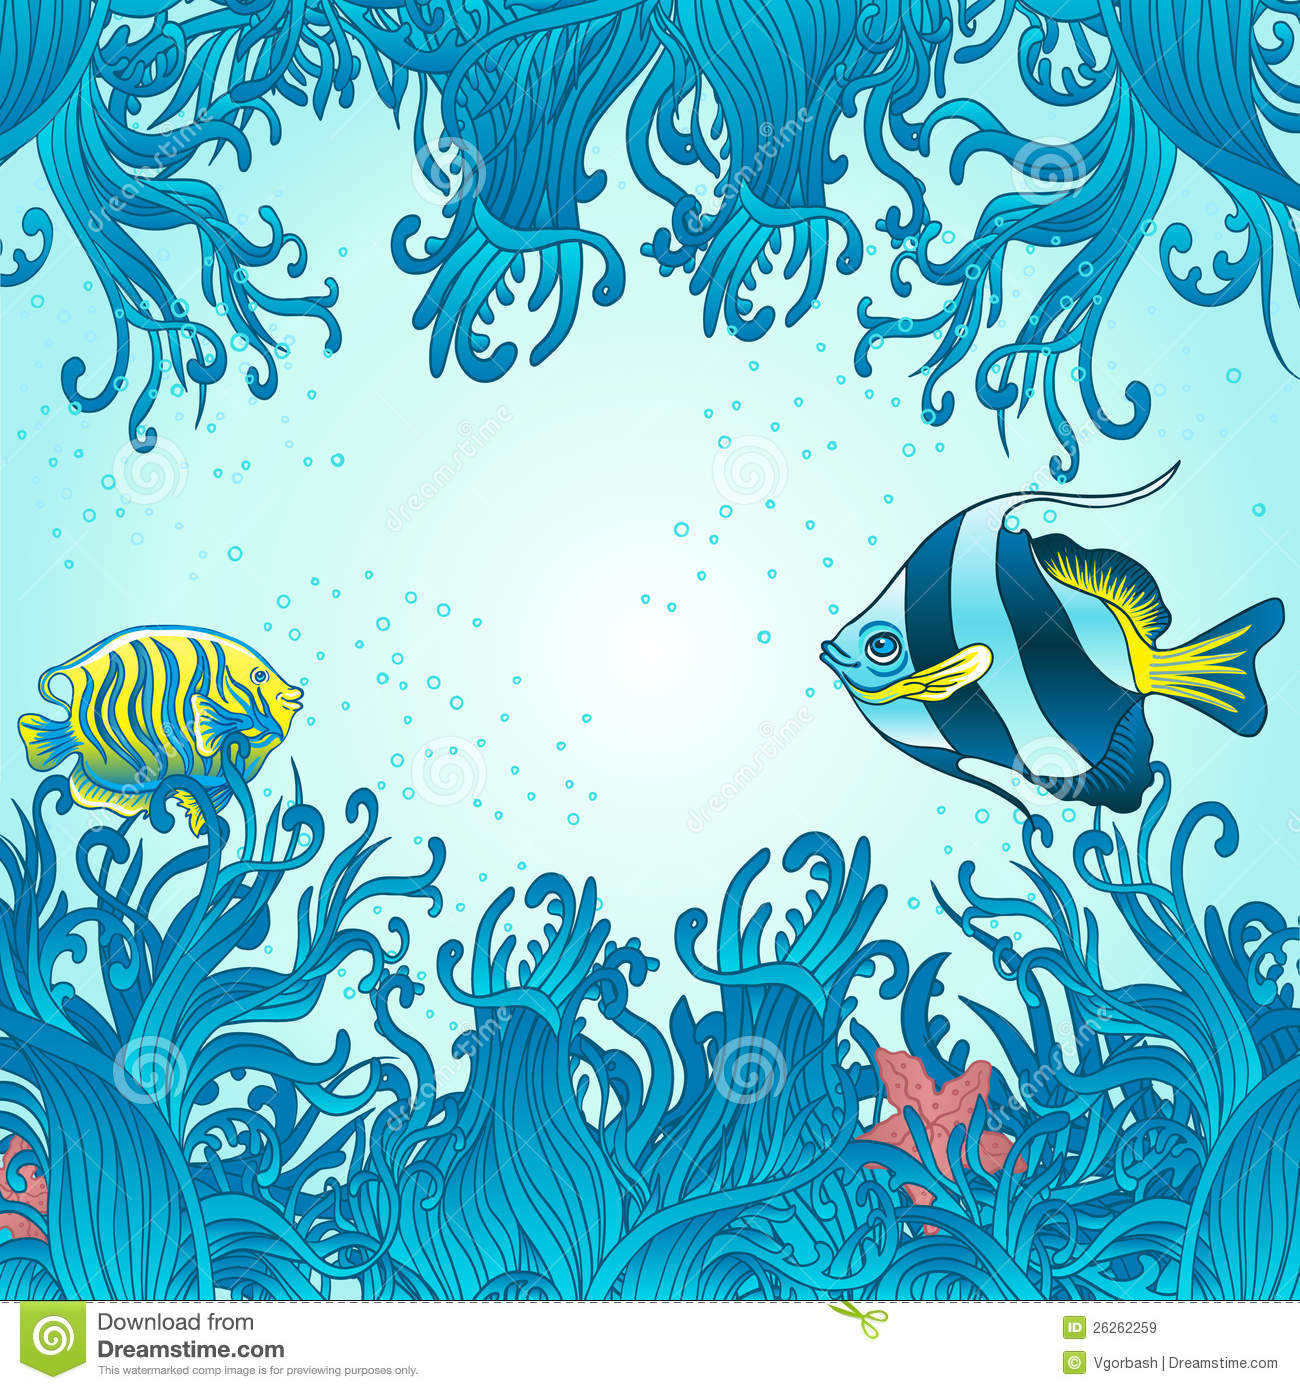 Sea Fish Background Royalty Free Stock Images - Image: 26262259